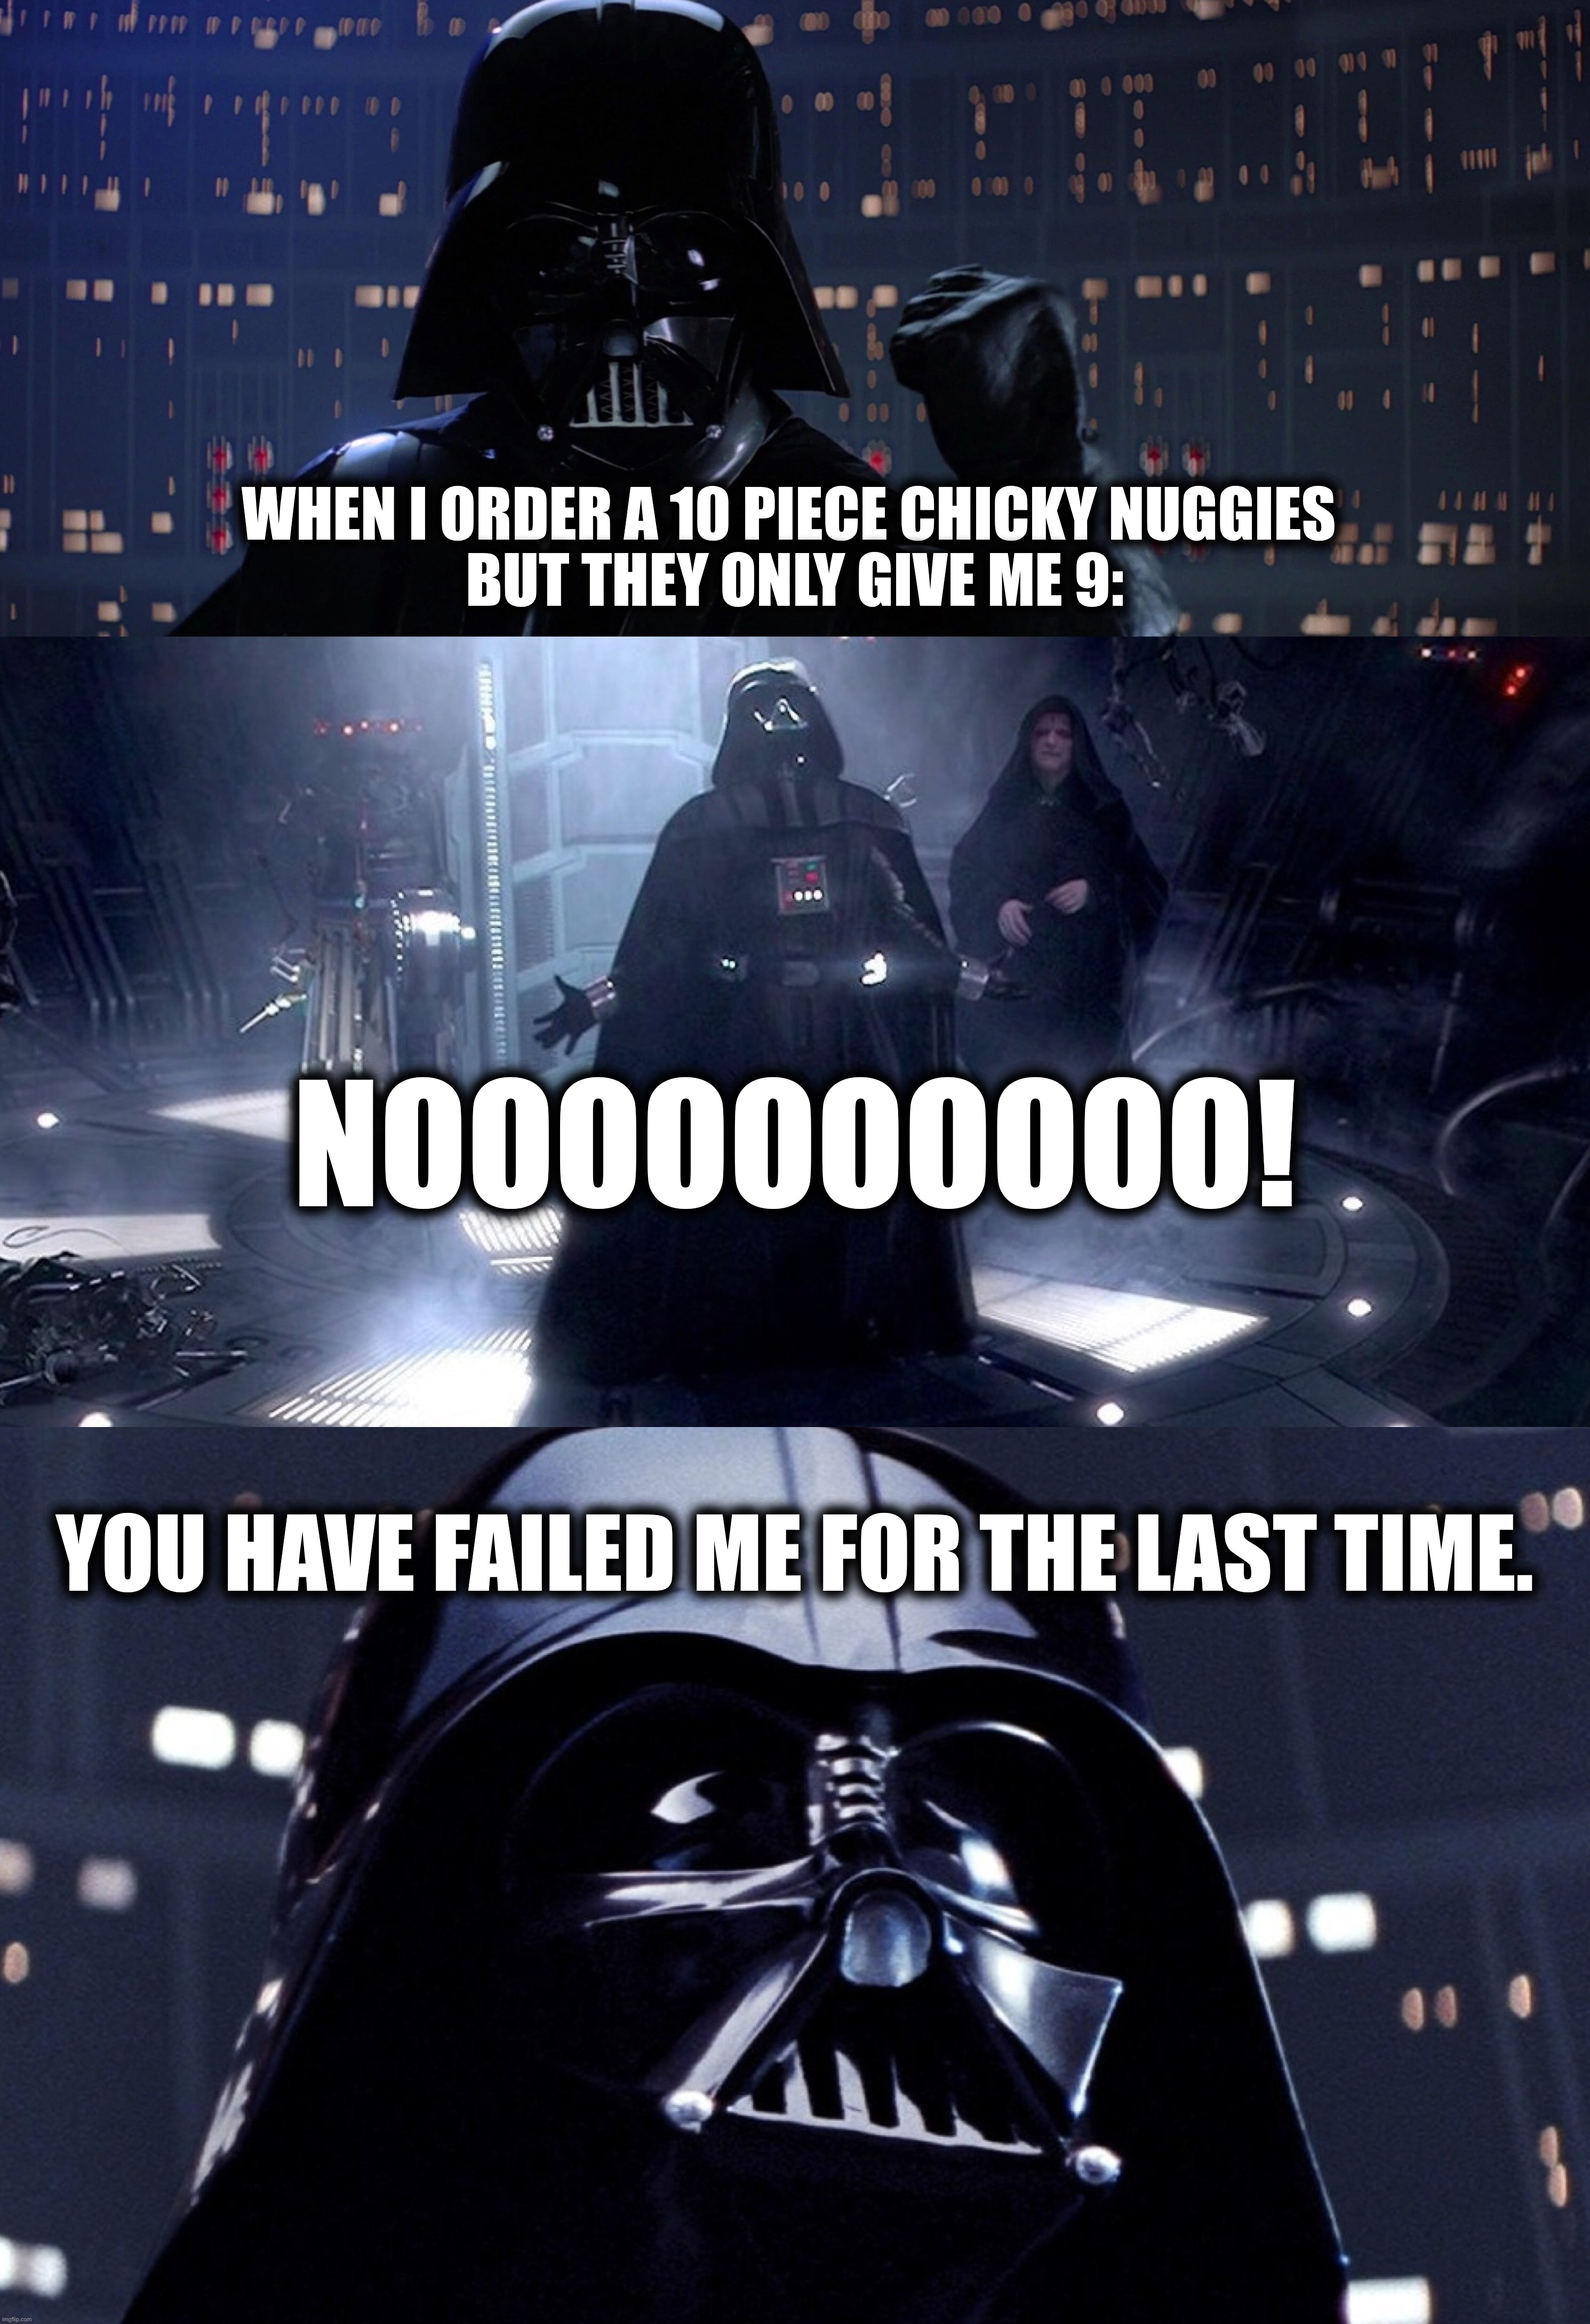 Chicky nuggies are important! |  WHEN I ORDER A 10 PIECE CHICKY NUGGIES  BUT THEY ONLY GIVE ME 9:; NOOOOOOOOOO! YOU HAVE FAILED ME FOR THE LAST TIME. | image tagged in chicken,chicken nuggets,darth vader,star wars,food,noooooooooooooooooooooooo | made w/ Imgflip meme maker